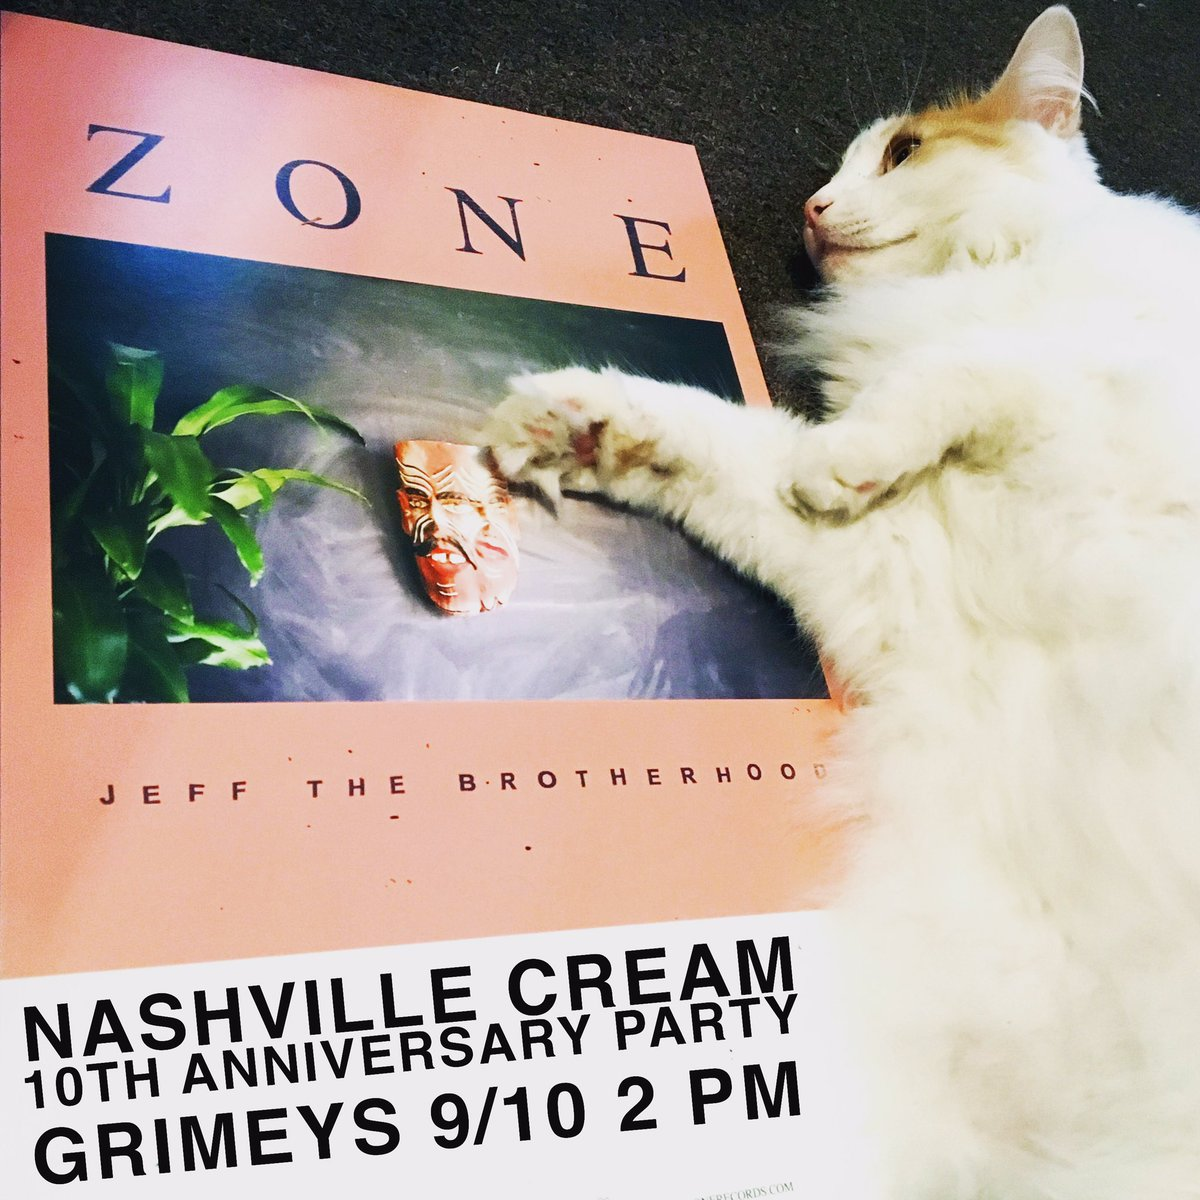 rt to win 2 tix to @nashvillecream's bday party this sat. we'll pick a winner at 5pm tomorrow good luck https://t.co/fBGaIEUUrn